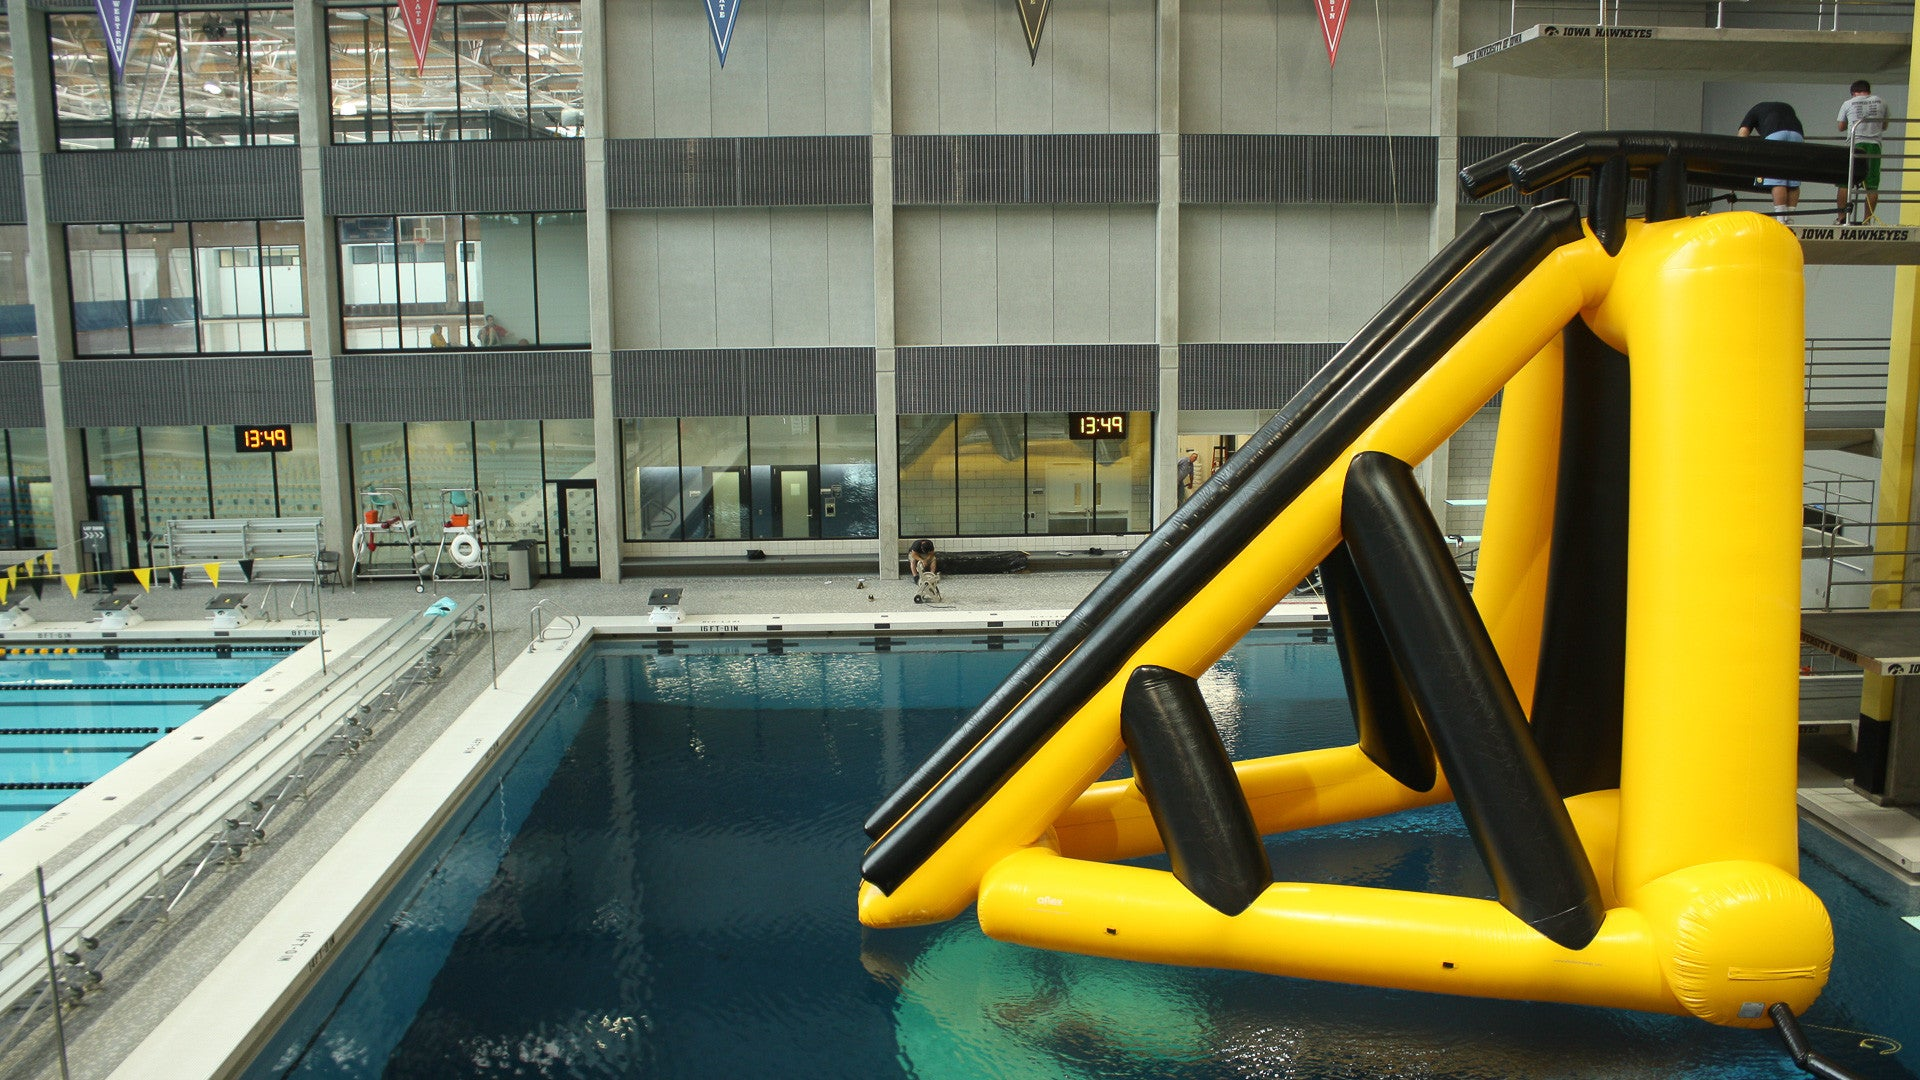 Mach II 7.5m Dive Board Slide